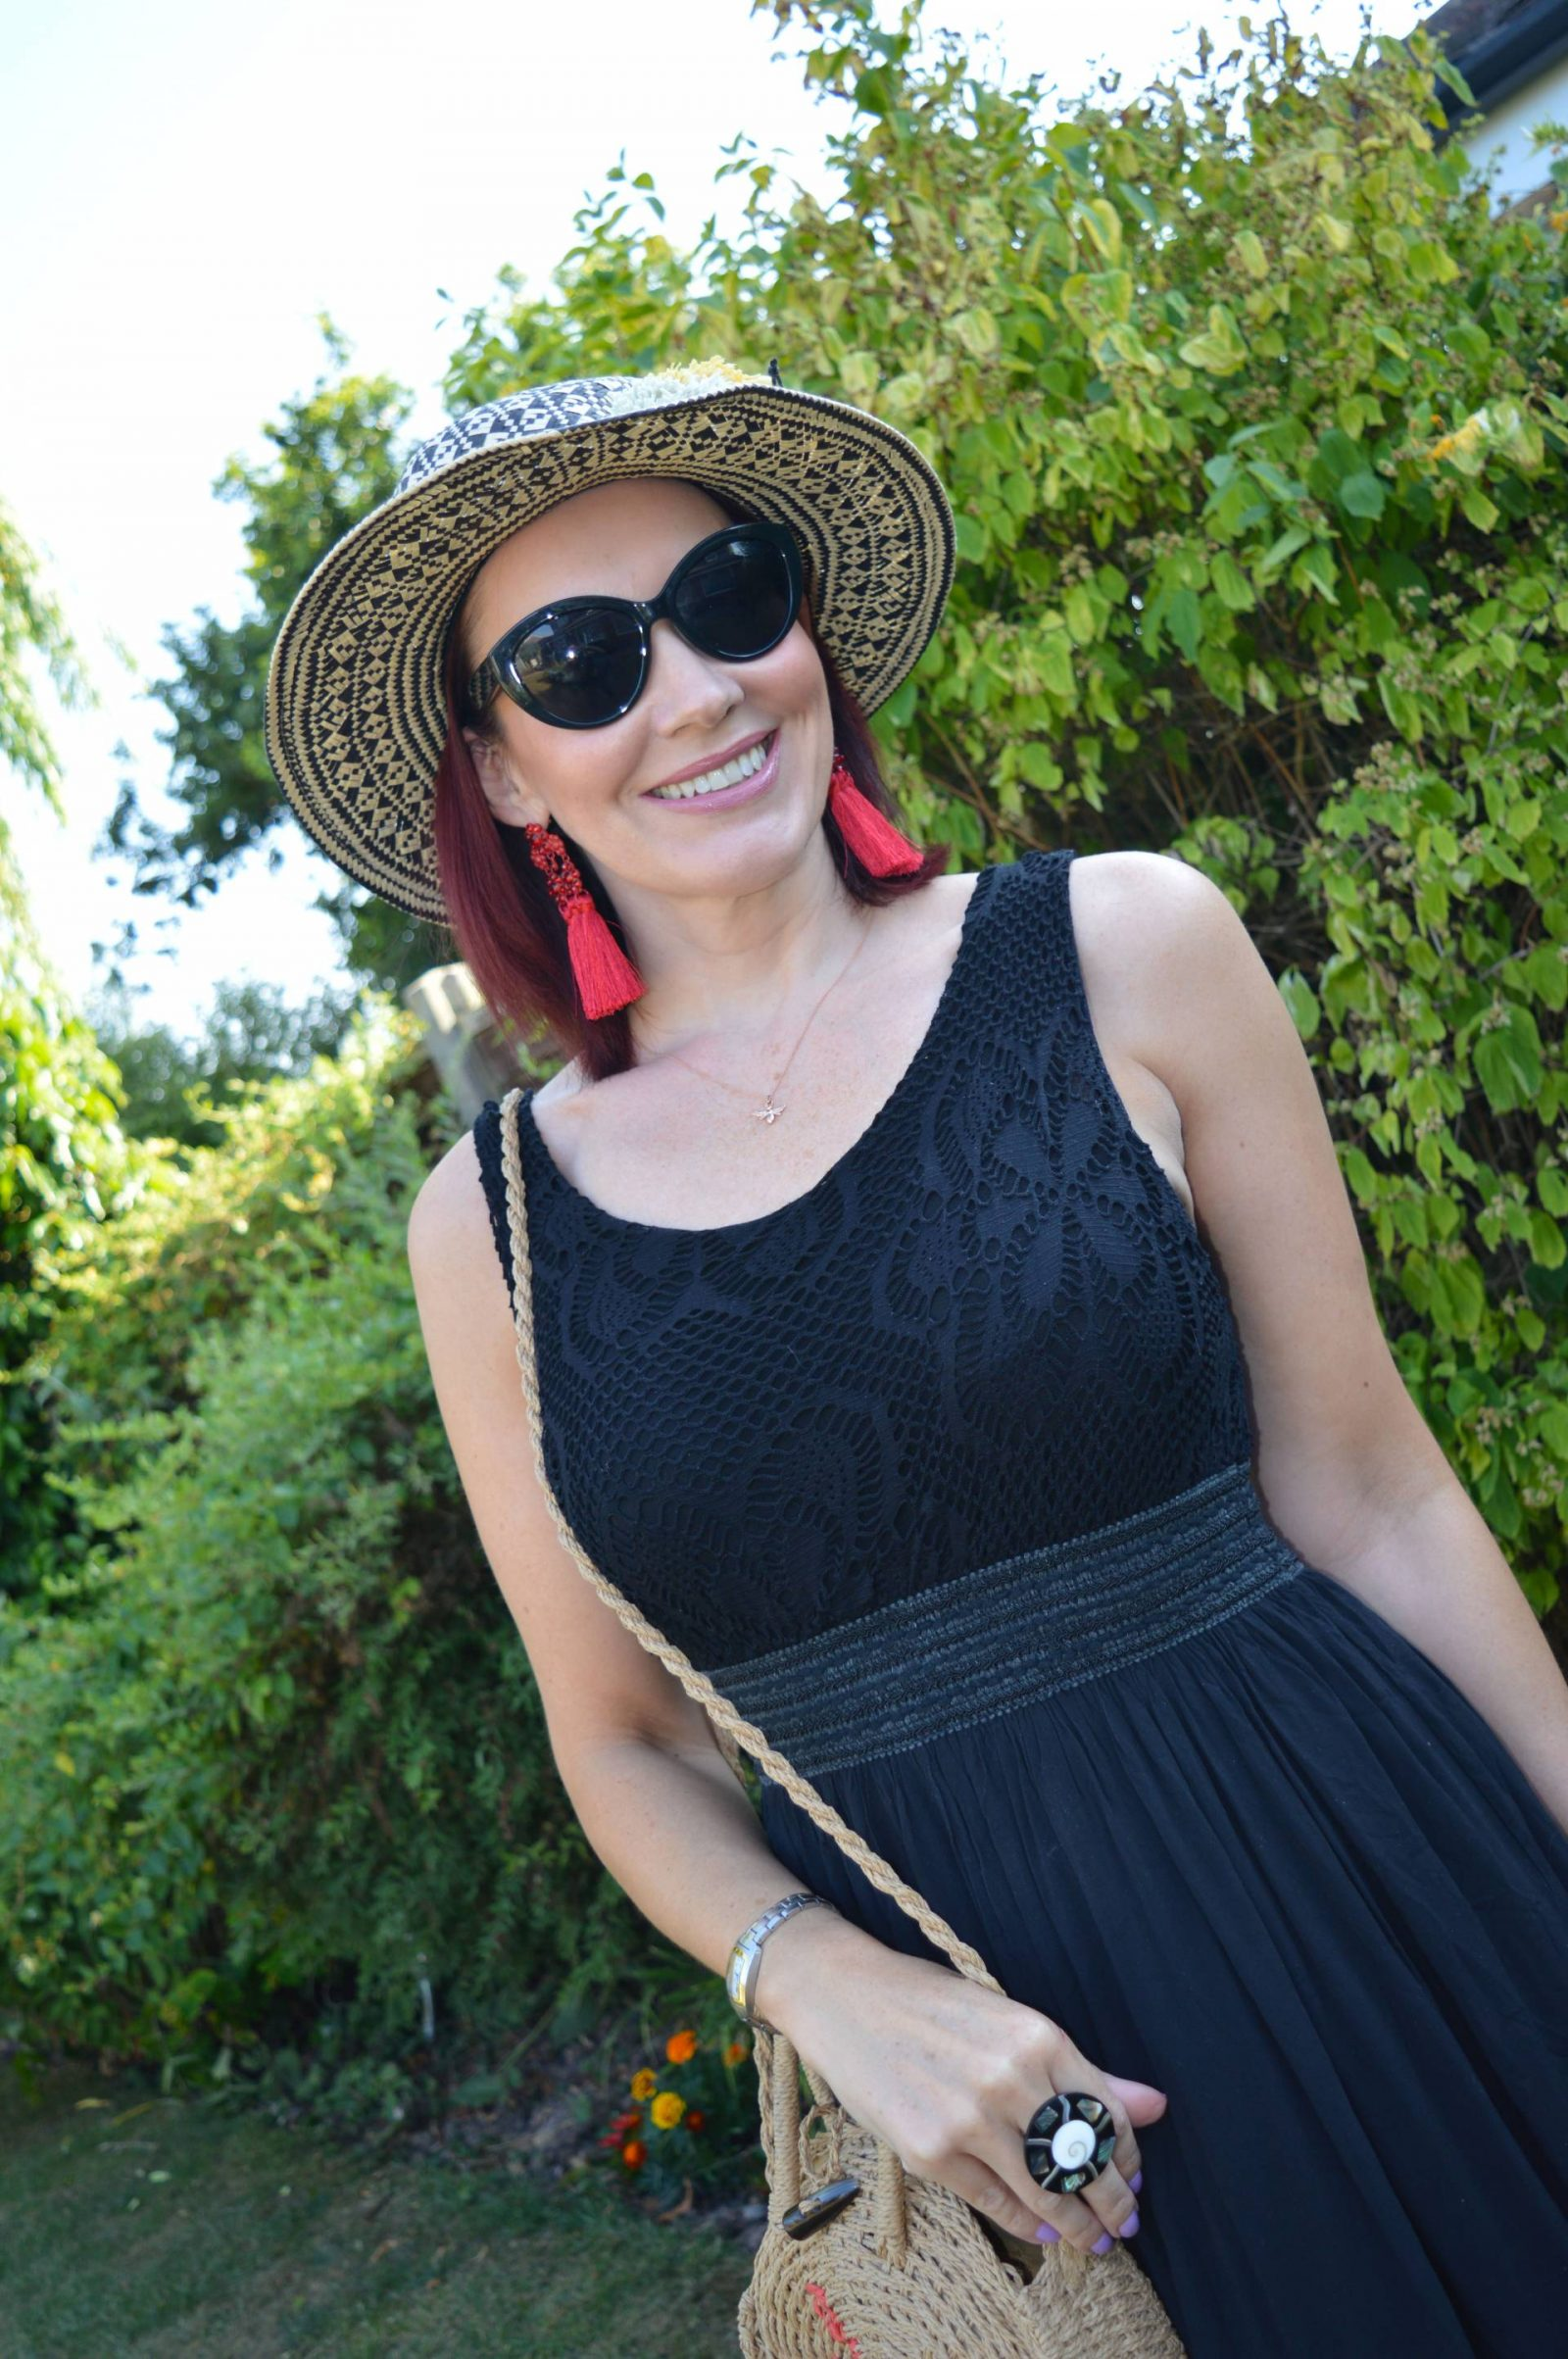 Krisp Black maxi dress for a hot Summer's day